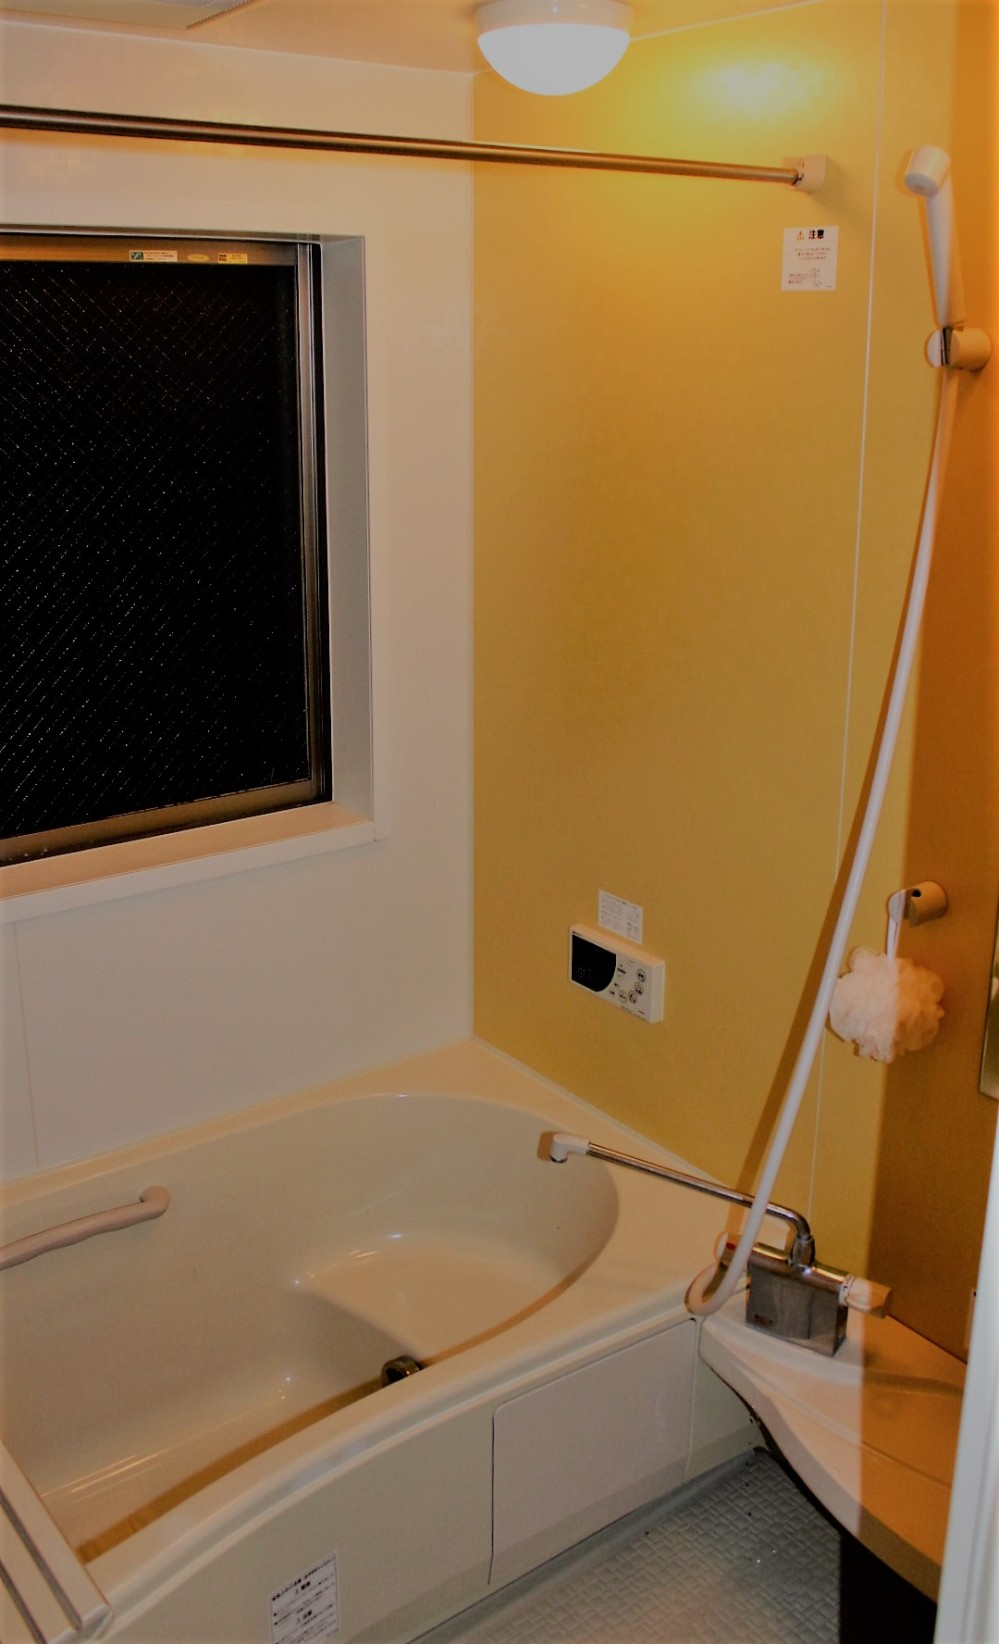 Modern Japanese shower hose with tub beside it and water heater remote on wall.